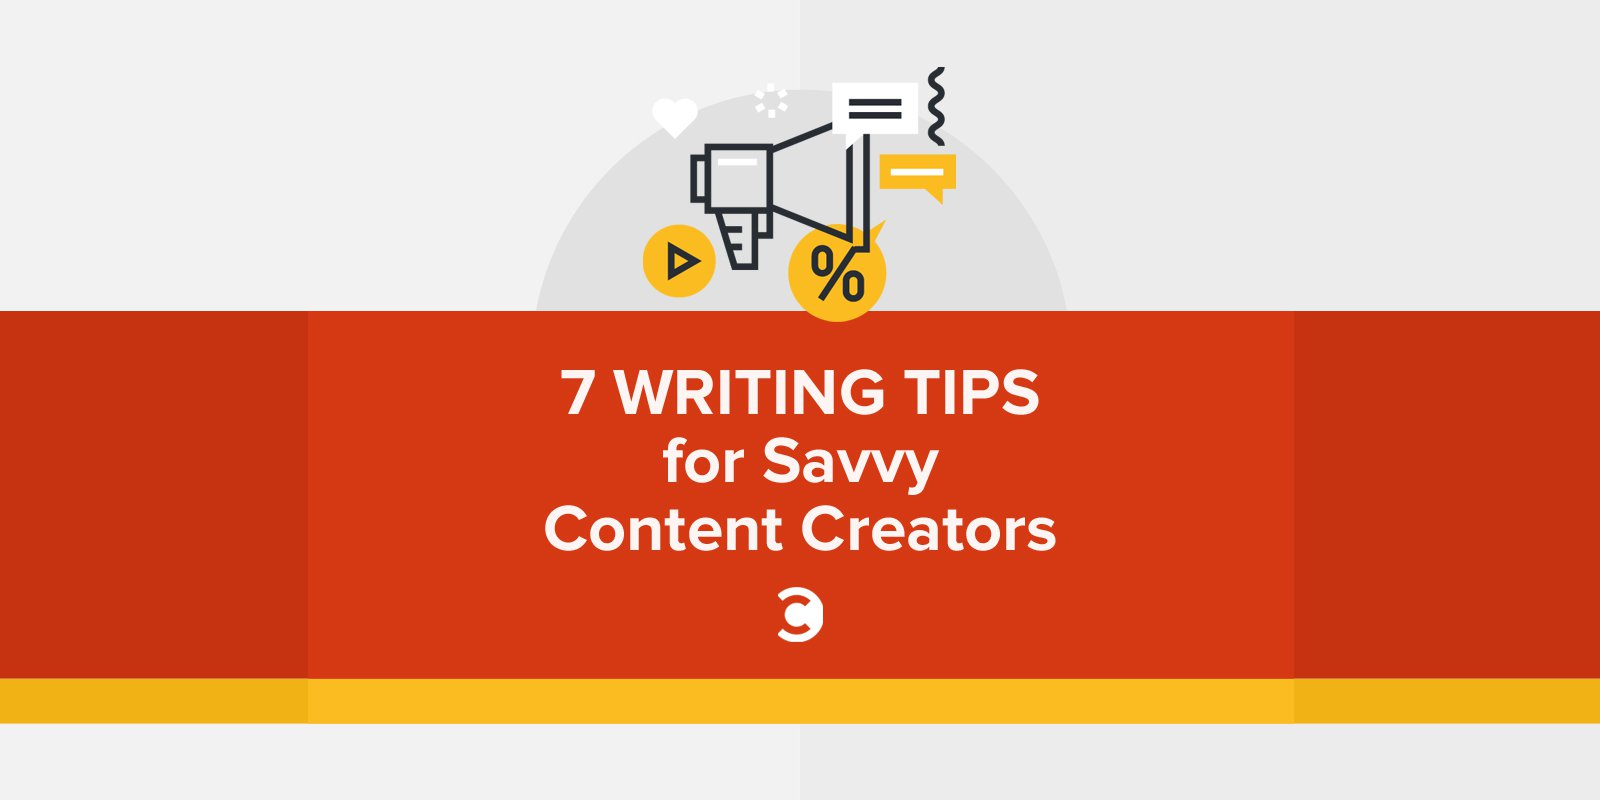 7 Writing Tips for Savvy Content Creators1